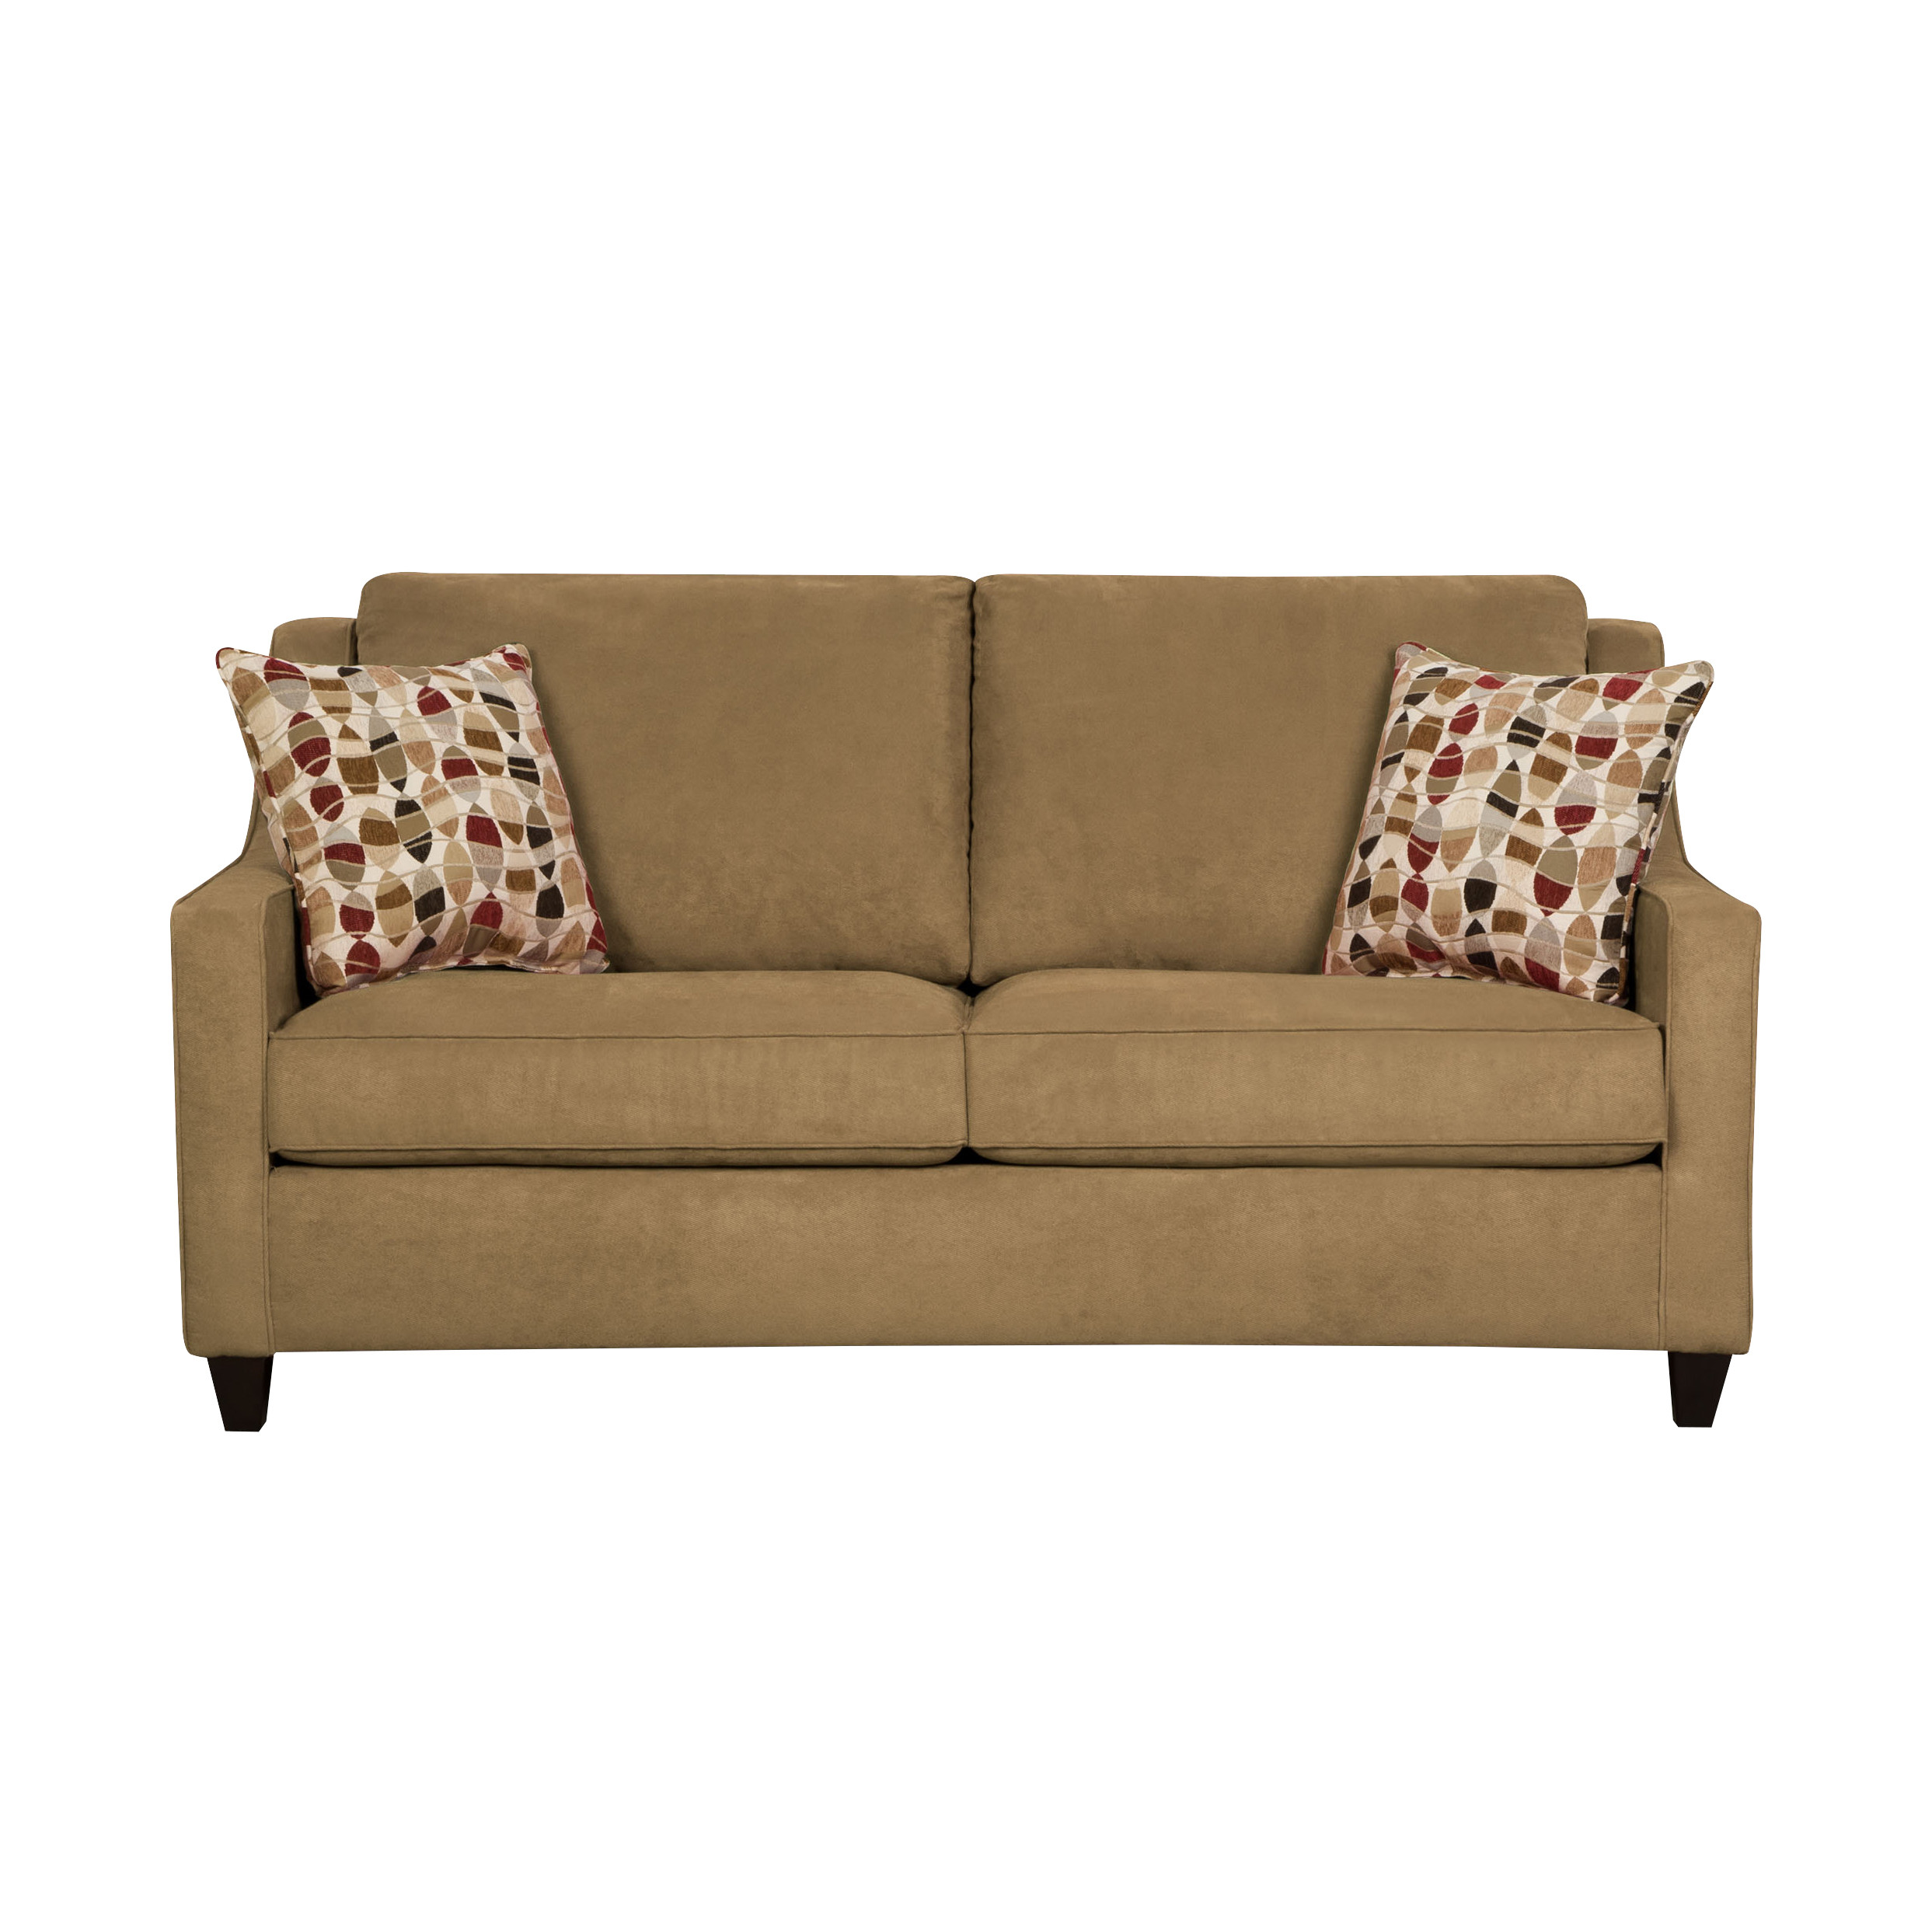 Wayfair Sofa | Rooms to Go Sleeper Loveseat | Loveseat Sleeper